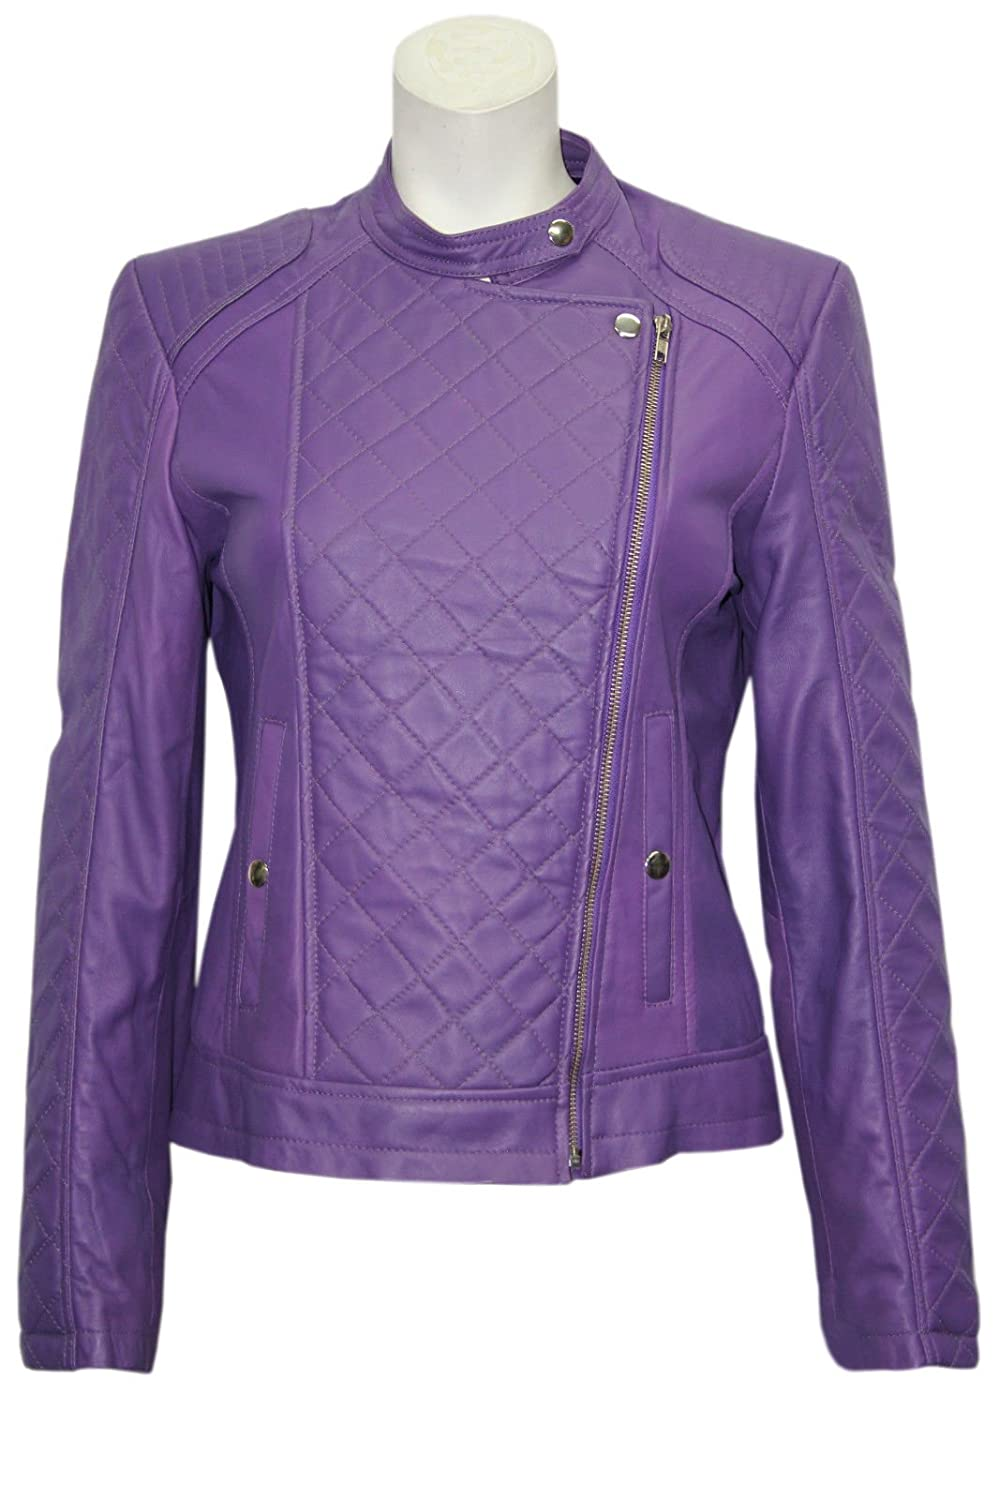 Ladies Diamond Purple Stylish Fashion Designer Quilted Soft Real Leather Jacket deep purple deep purple stormbringer 35th anniversary edition cd dvd